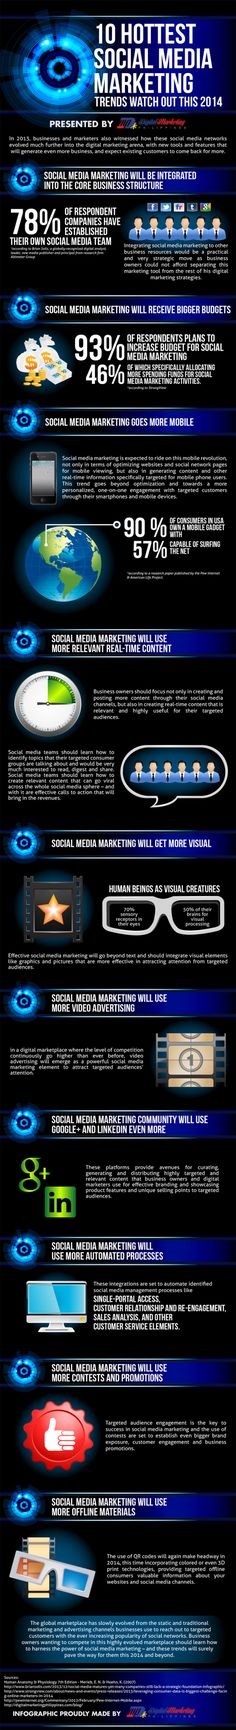 Infographic: 10 Hottest Trends in Social Media Marketing - Marketing Technology Blog